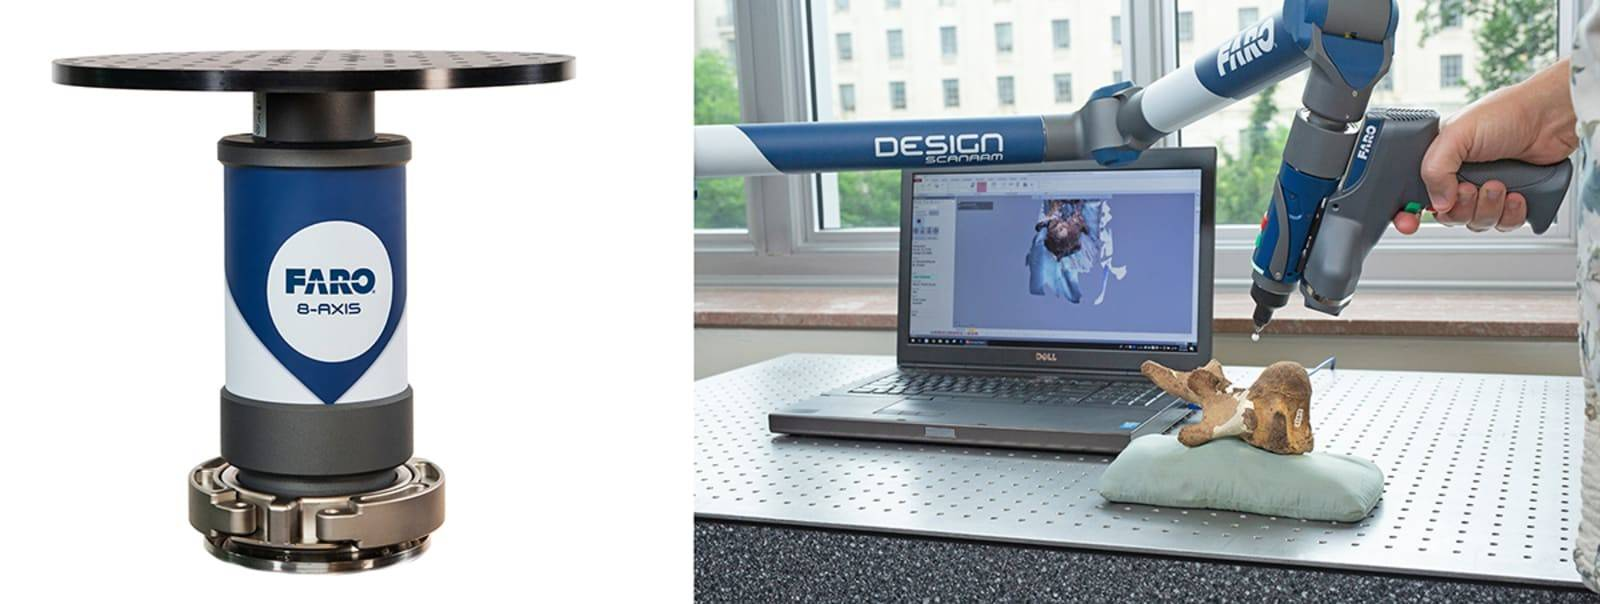 The new 8-Axis (pictured left) and the Digitization Program Office scanning an artifact (pictured right).